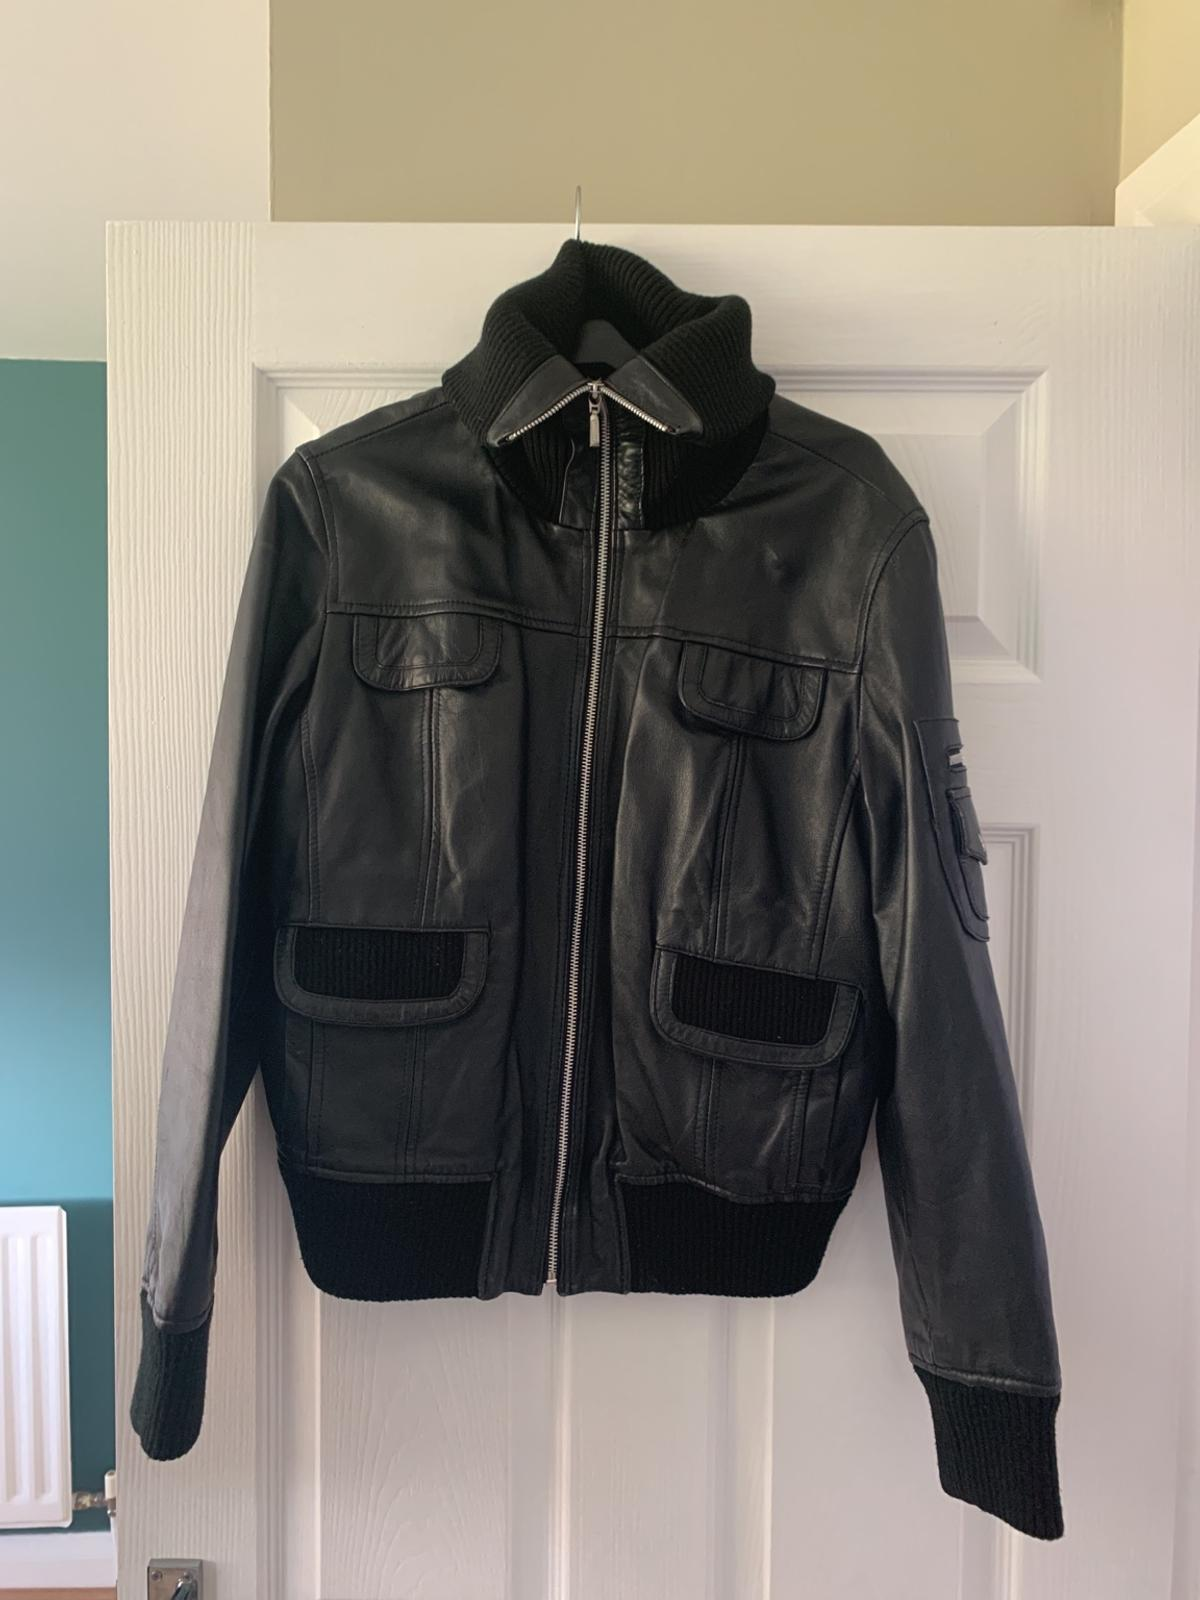 Black leather jacket has a small rib on inside where tag has been